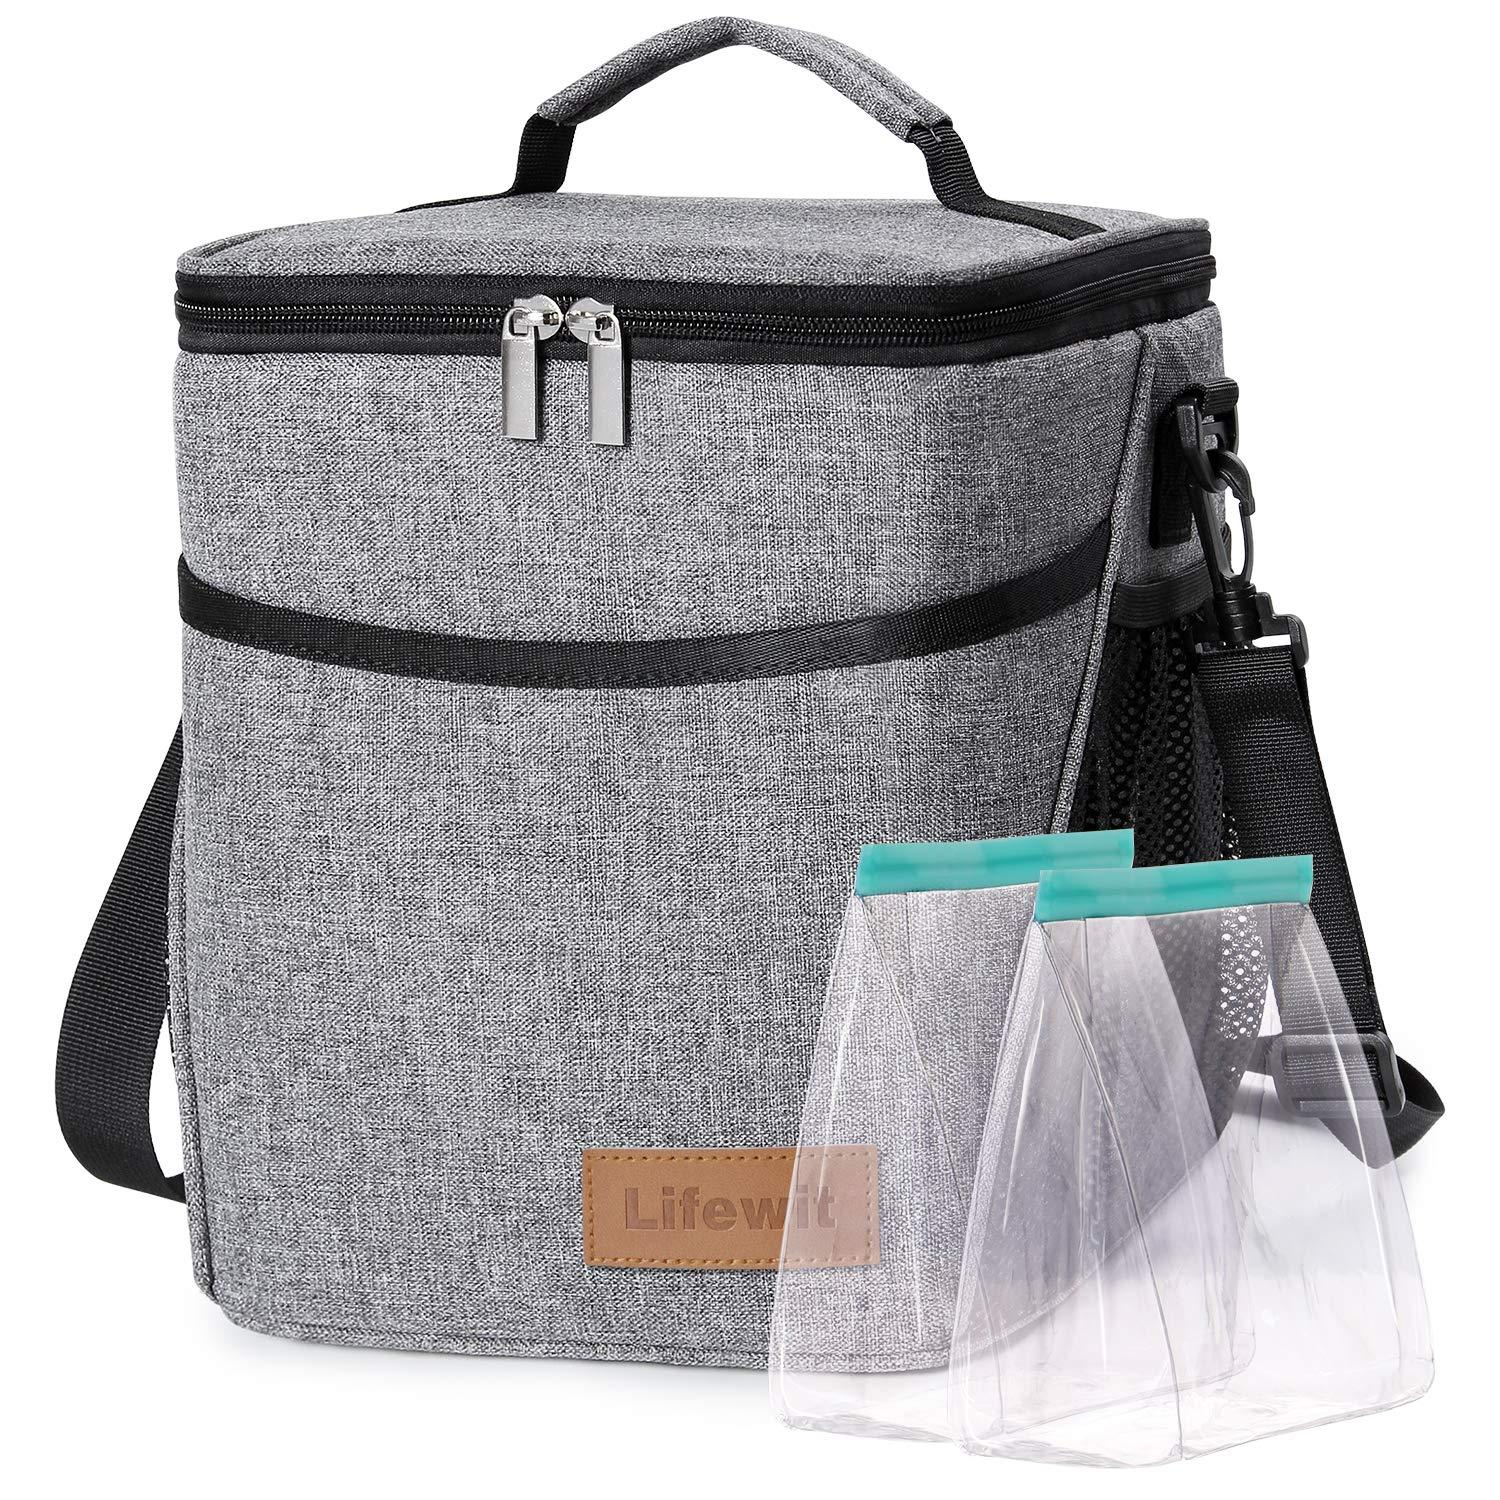 Lifewit 9L Insulated Lunch Bag